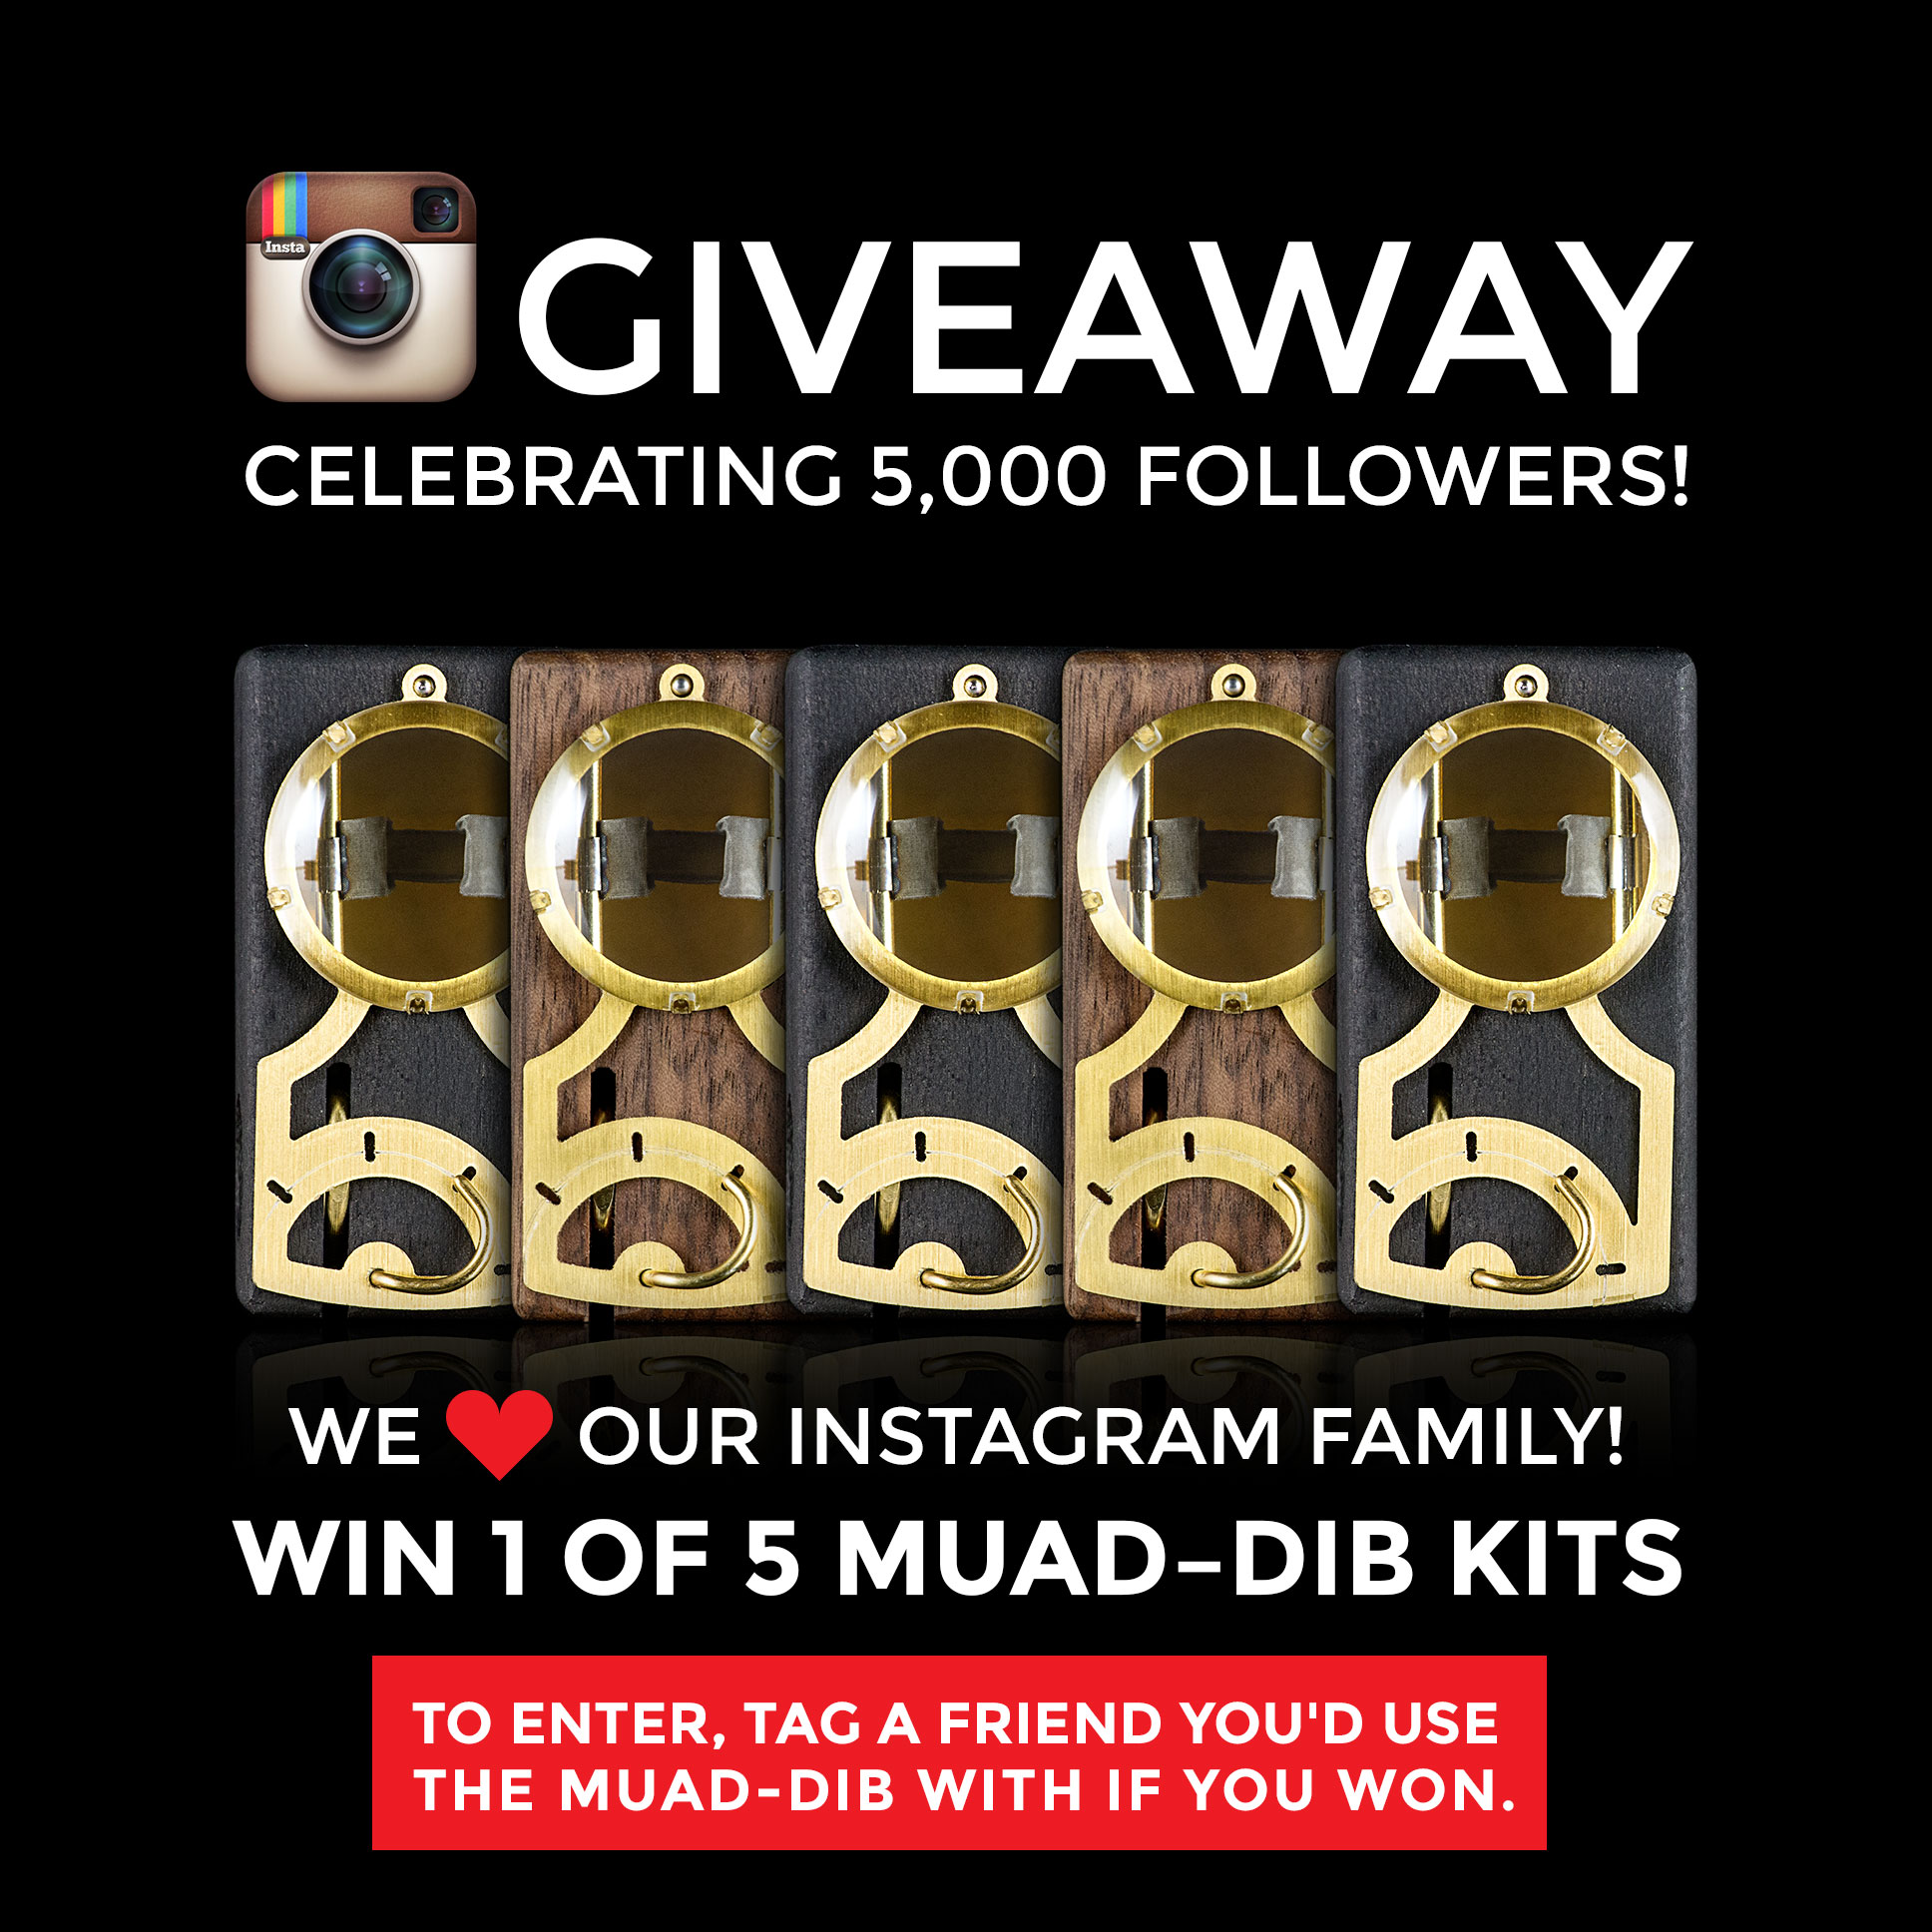 IG-Giveaway_5k-Followers